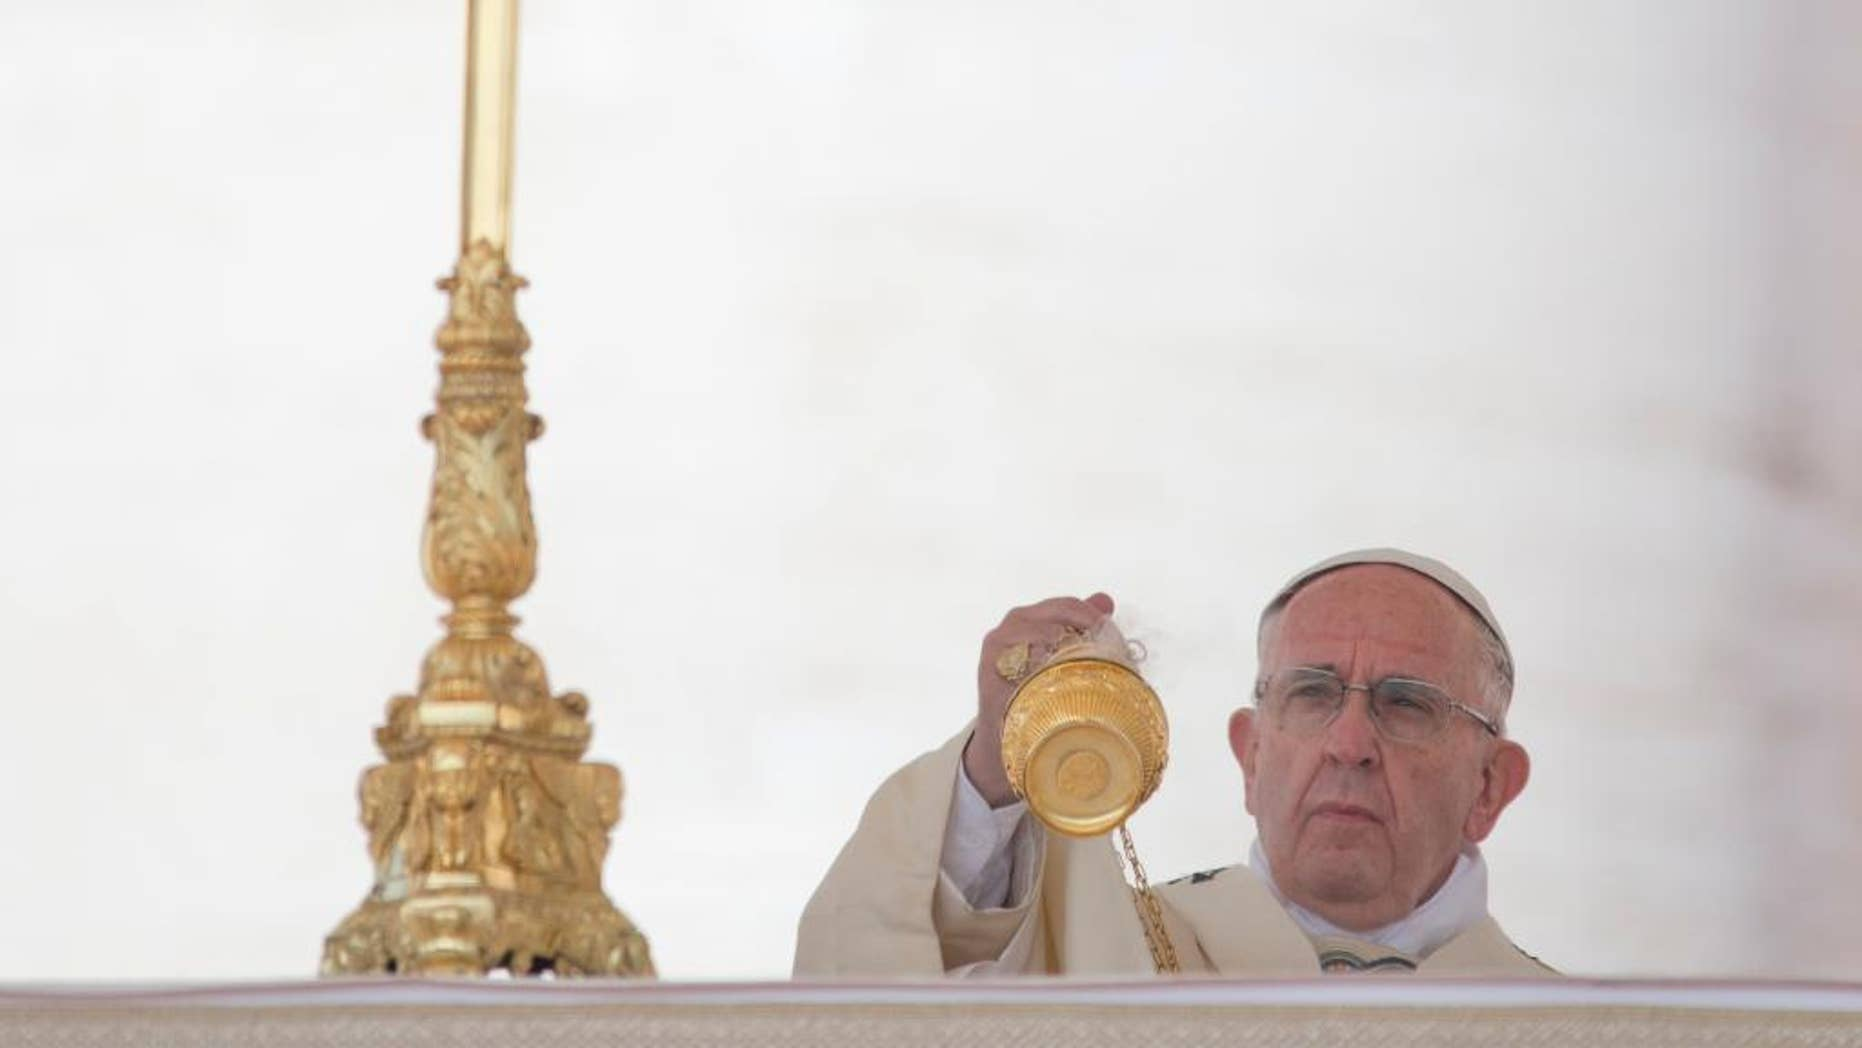 Pope Francis asperses incense as he arrives in St. Peter's Square at the Vatican for a canonization ceremony, Sunday, June 5, 2016. Pope Francis has canonized Elizabeth Hesselblad, a Lutheran convert who hid Jews during World War II and Stanislaus, the founder of the first men's religious order dedicated to the immaculate conception. (AP Photo/Alessandra Tarantino)